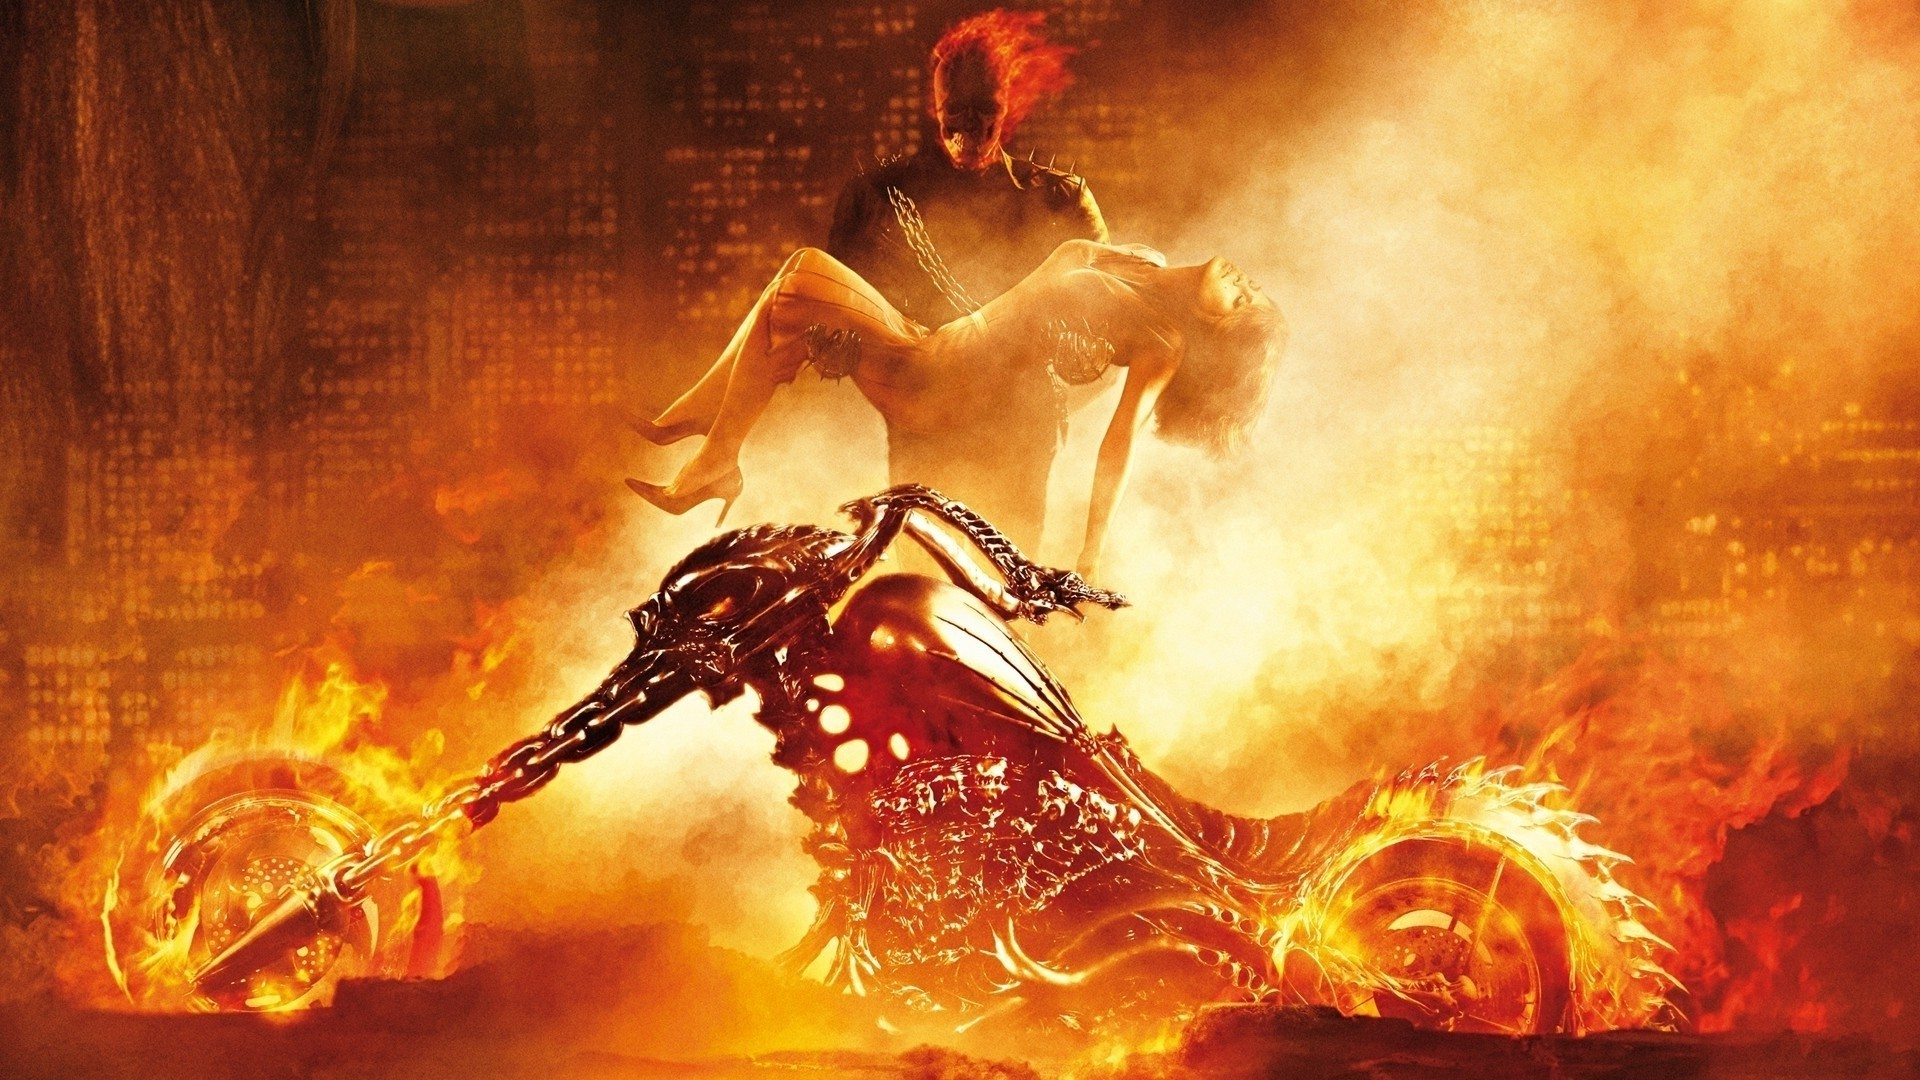 ghost rider bike wallpapers (58+ images)